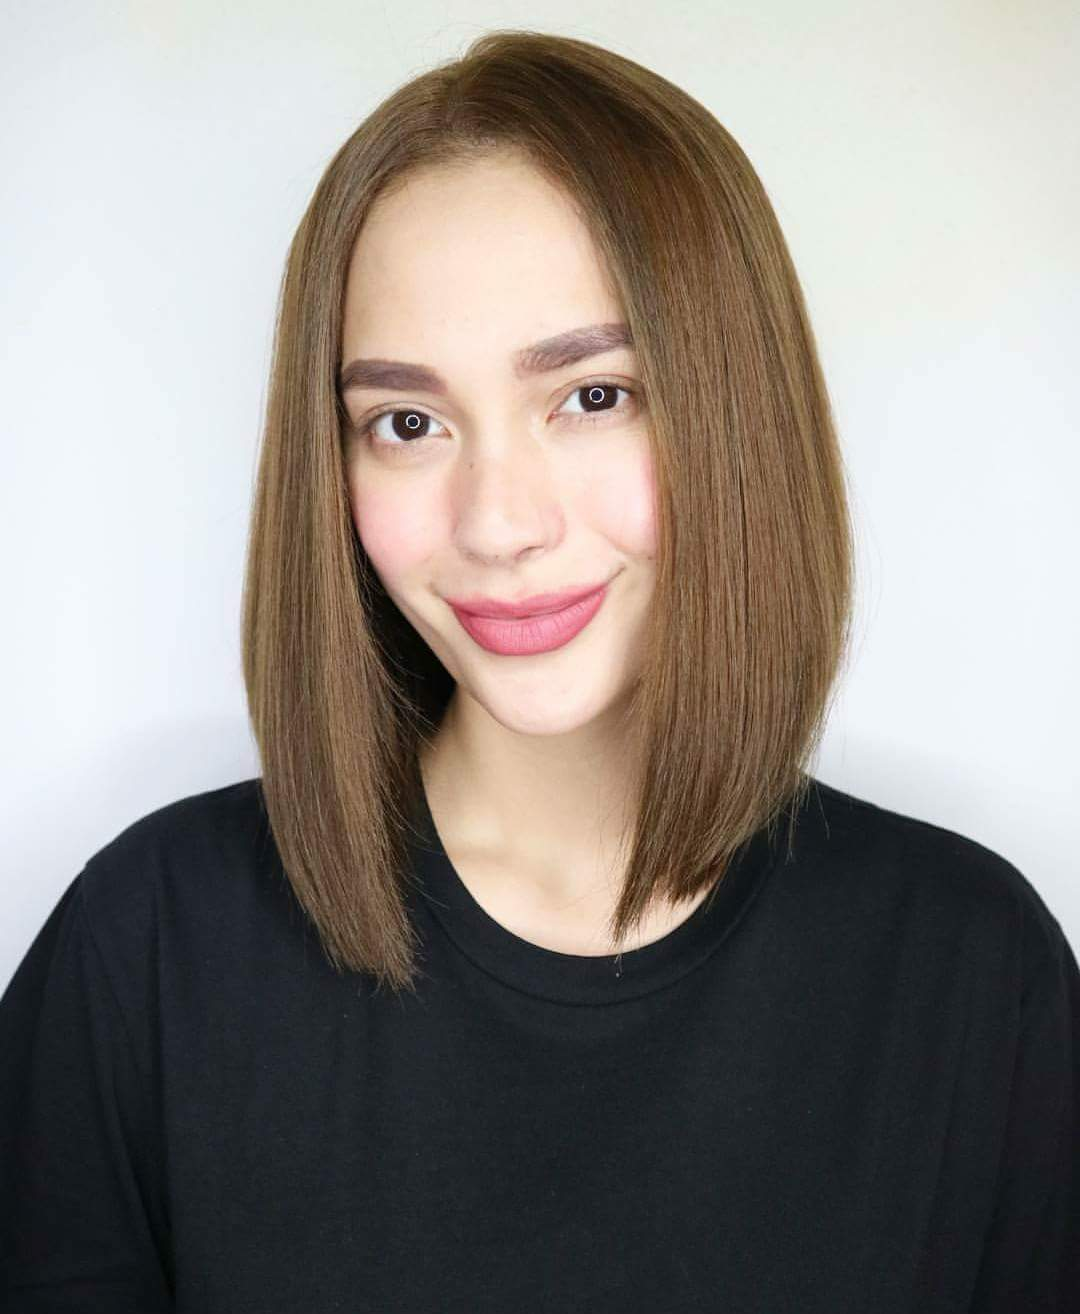 Photos Show Arci Mu 241 Oz Having A Brand New Short Hairstyle